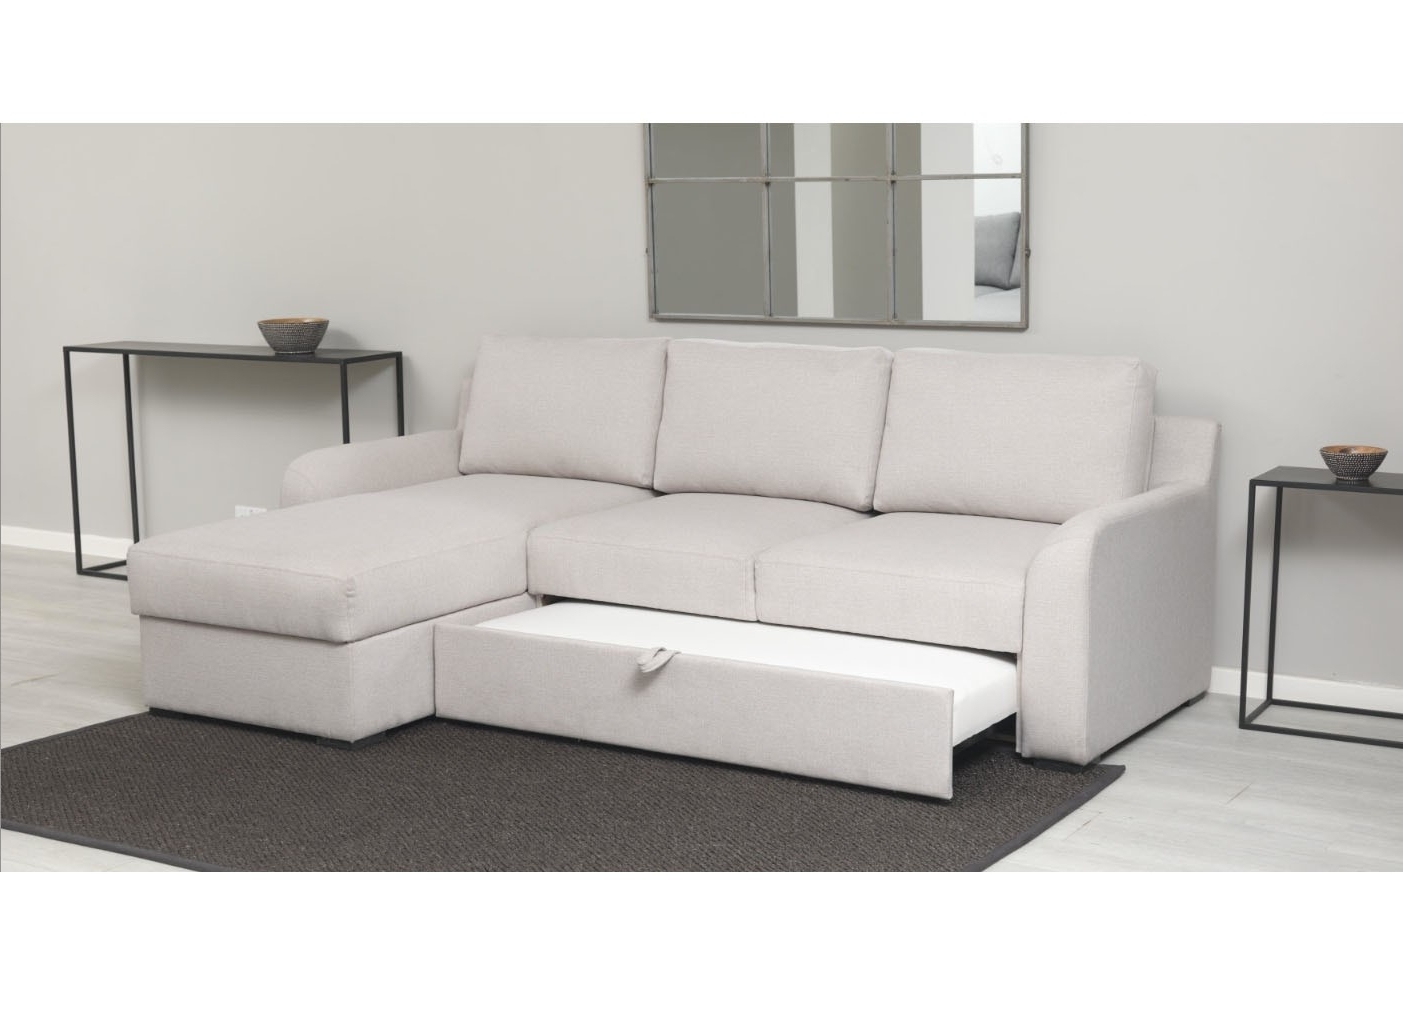 Corner Sofa Beds With Chaise For Most Current Corner Sofa Bed With Storage – Mforum (View 6 of 15)